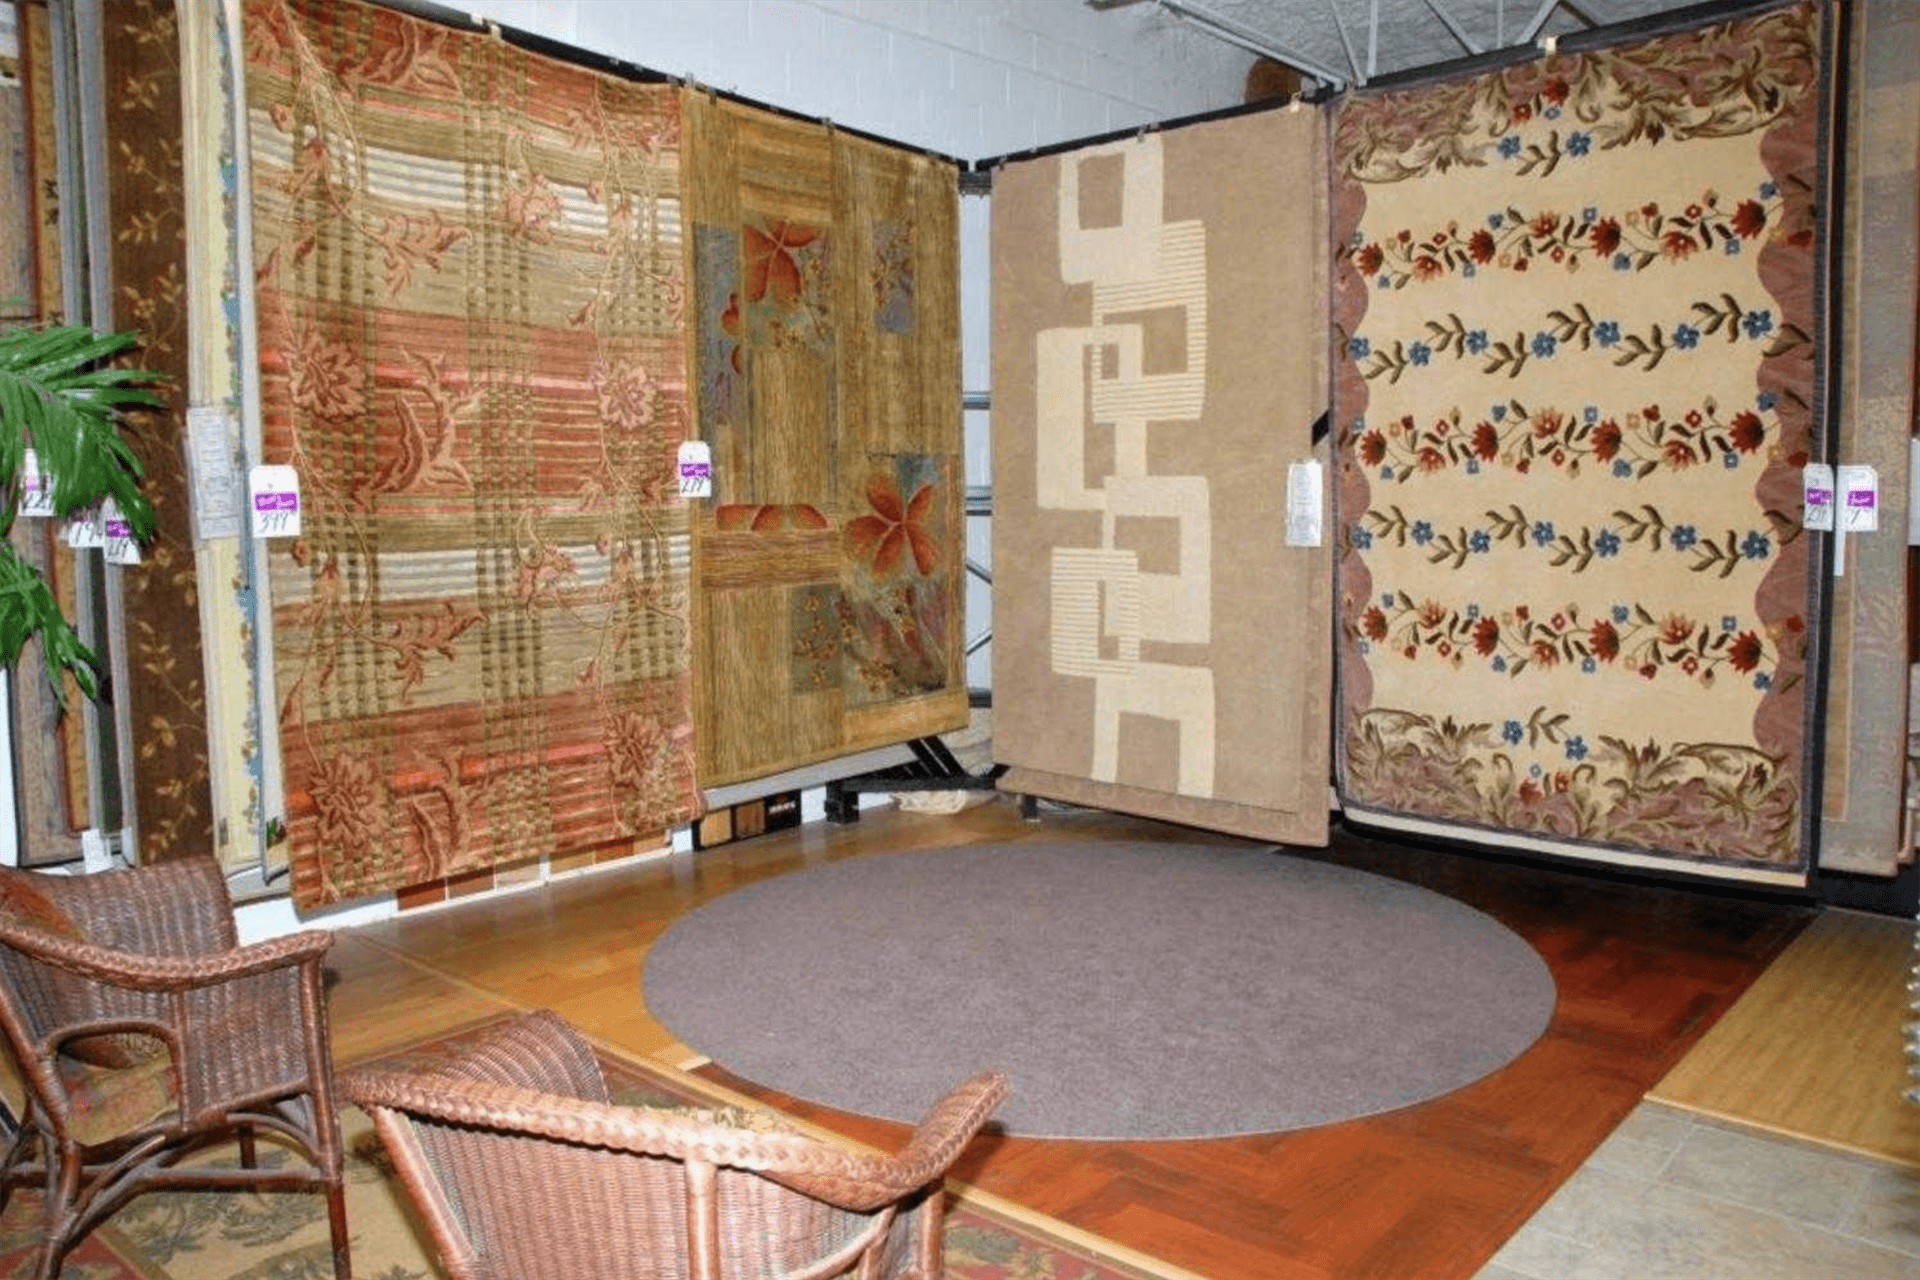 Britt's Carpet Outlet has many area carpets for your Punta Gorda, FL home